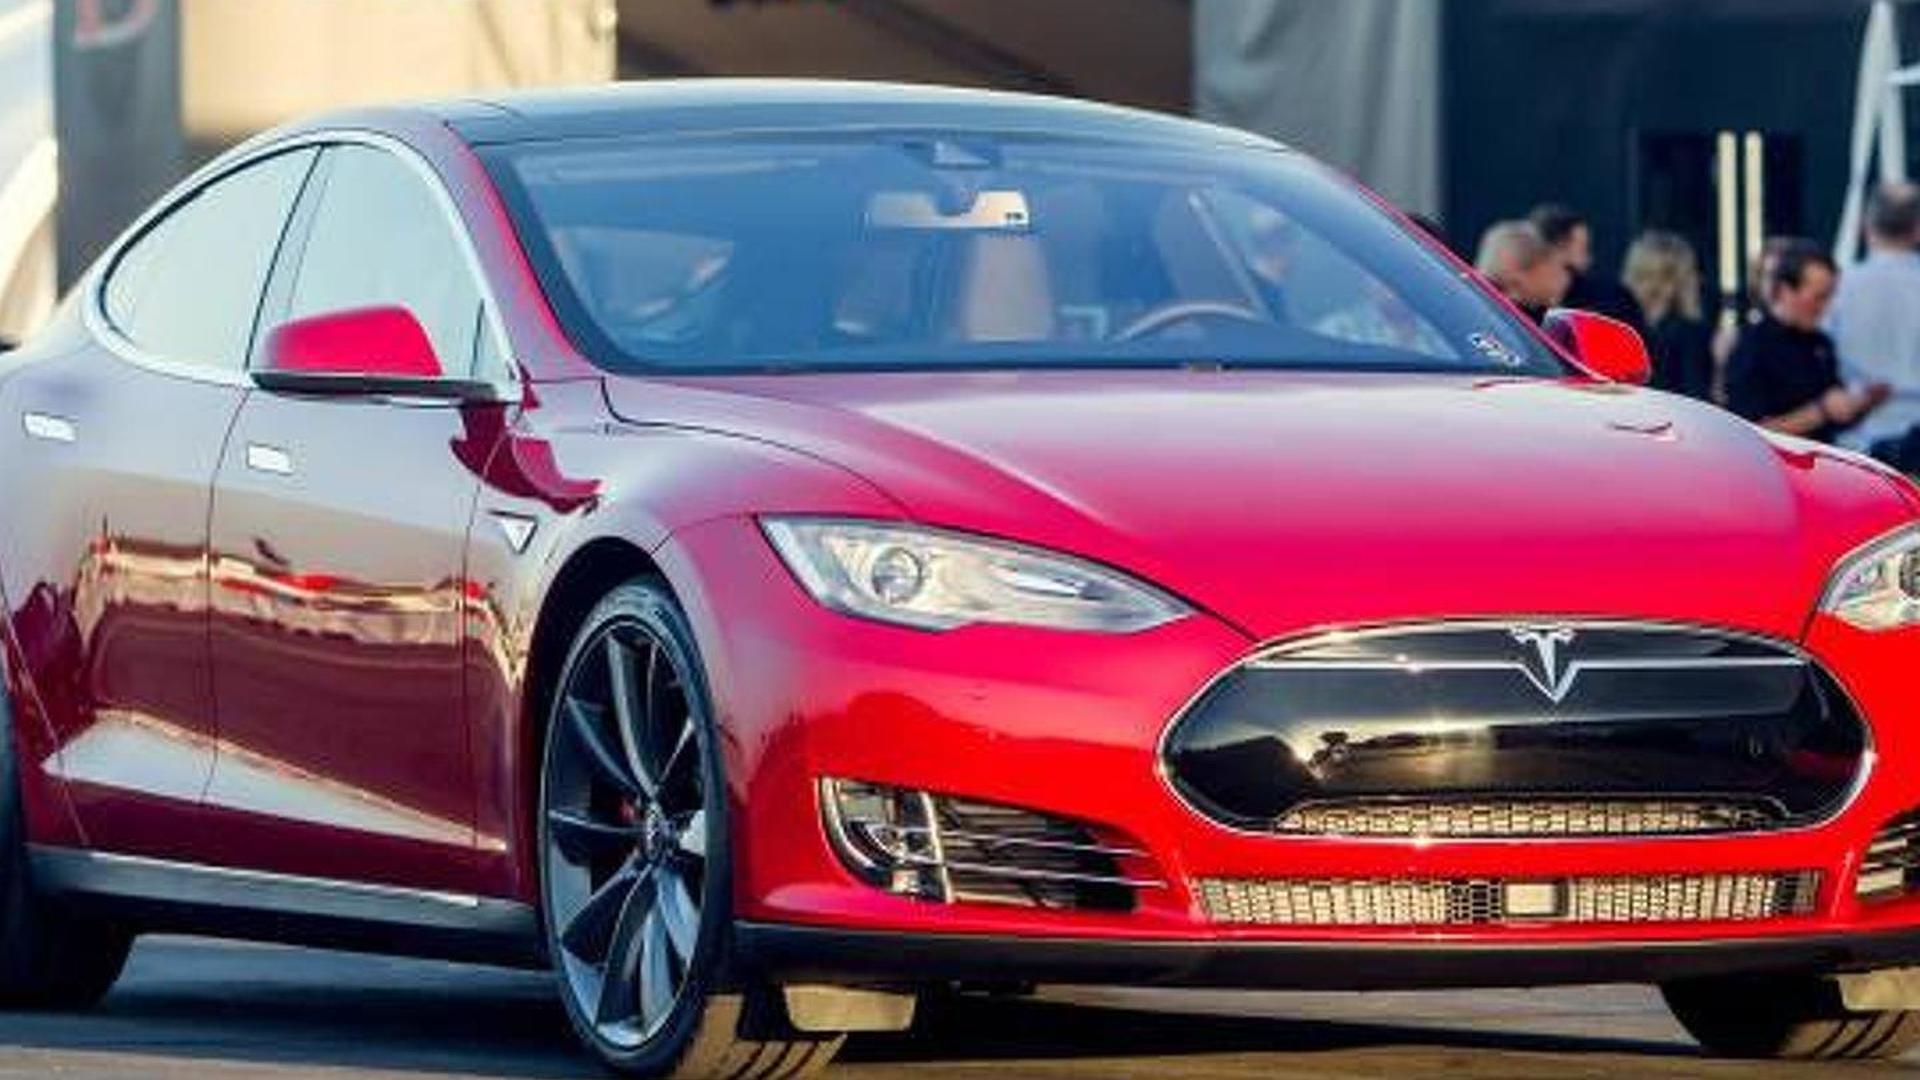 Tesla owners say Model S P85D power is inaccurate, company changes data on site